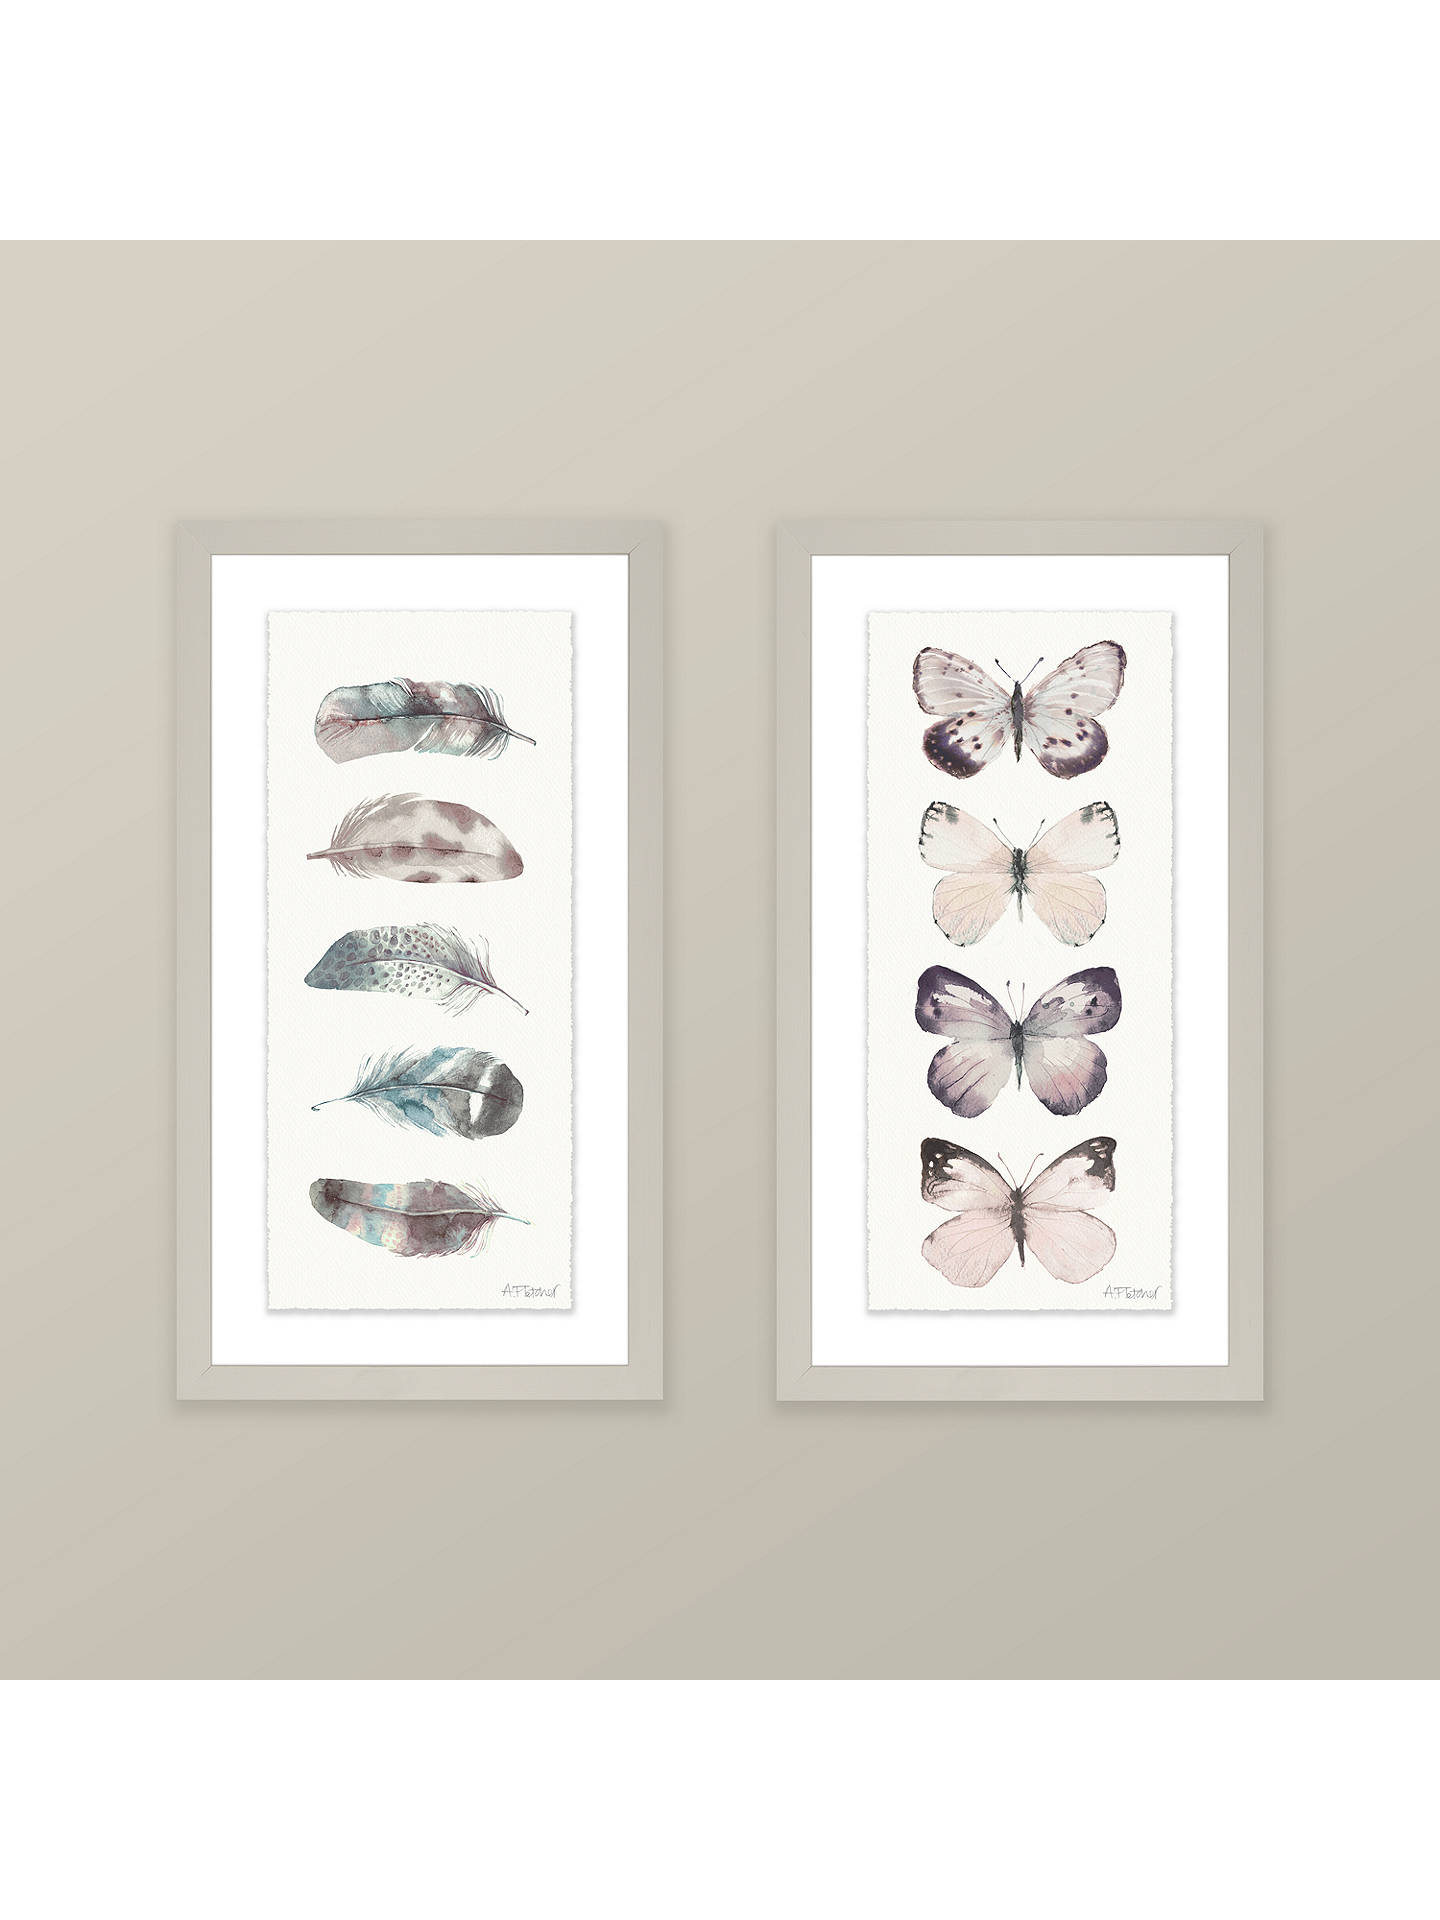 Buy Adelene Fletcher - Watercolour Butterflies Framed Print & Mount, 38 x 21cm Online at johnlewis.com